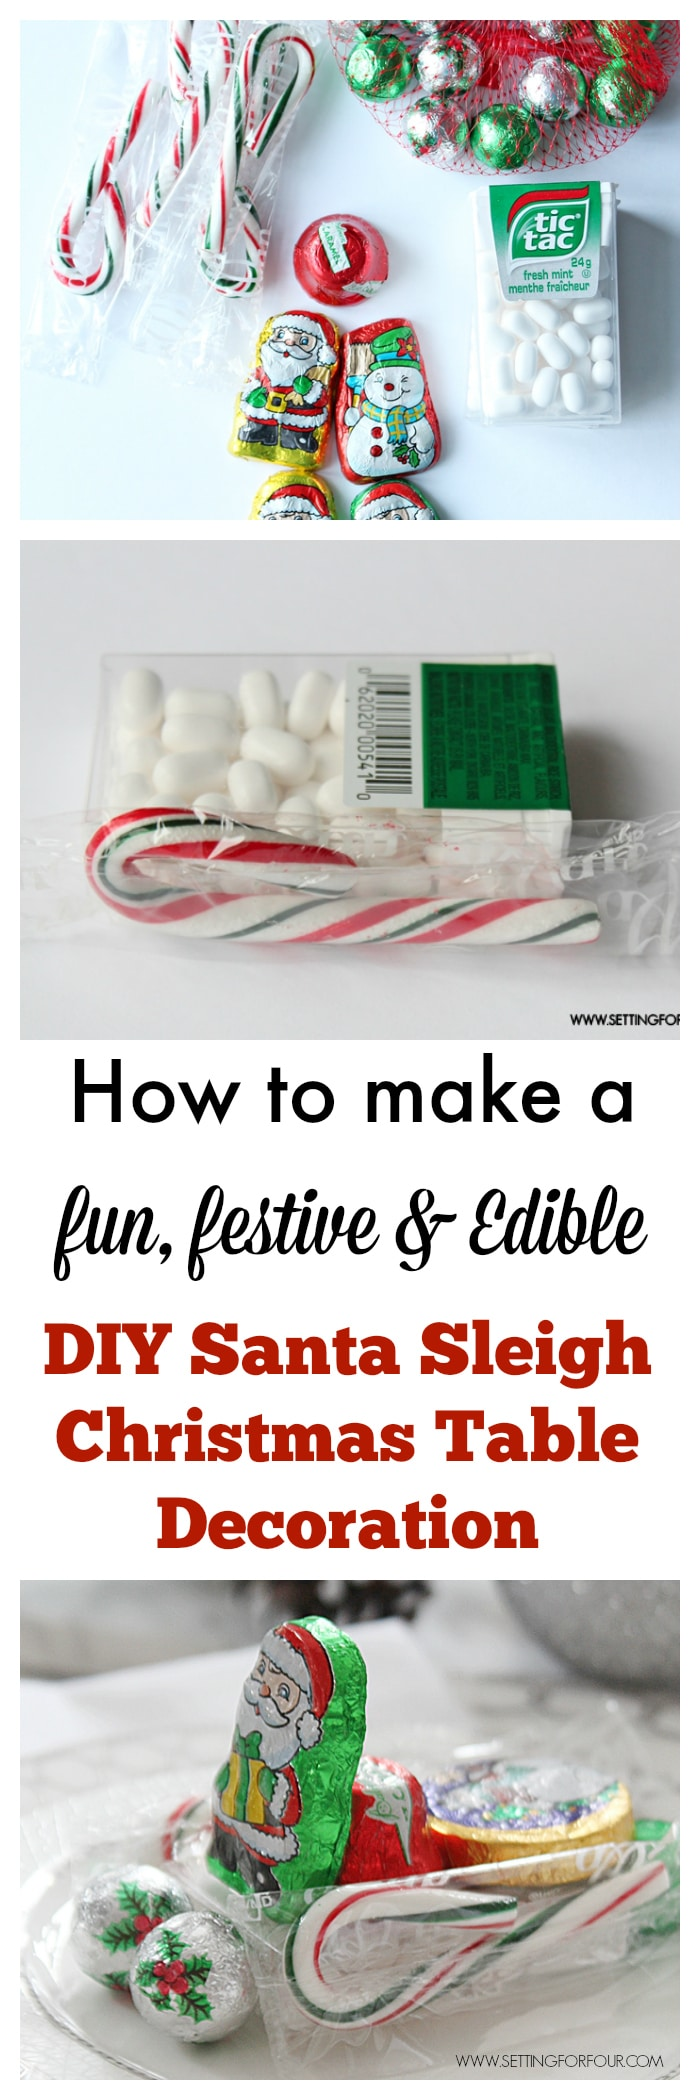 Make these fun and festive DIY Edible Santa Sleigh Christmas Table Decorations! I show you what you need to make them and all the steps! www.settingforfour.com